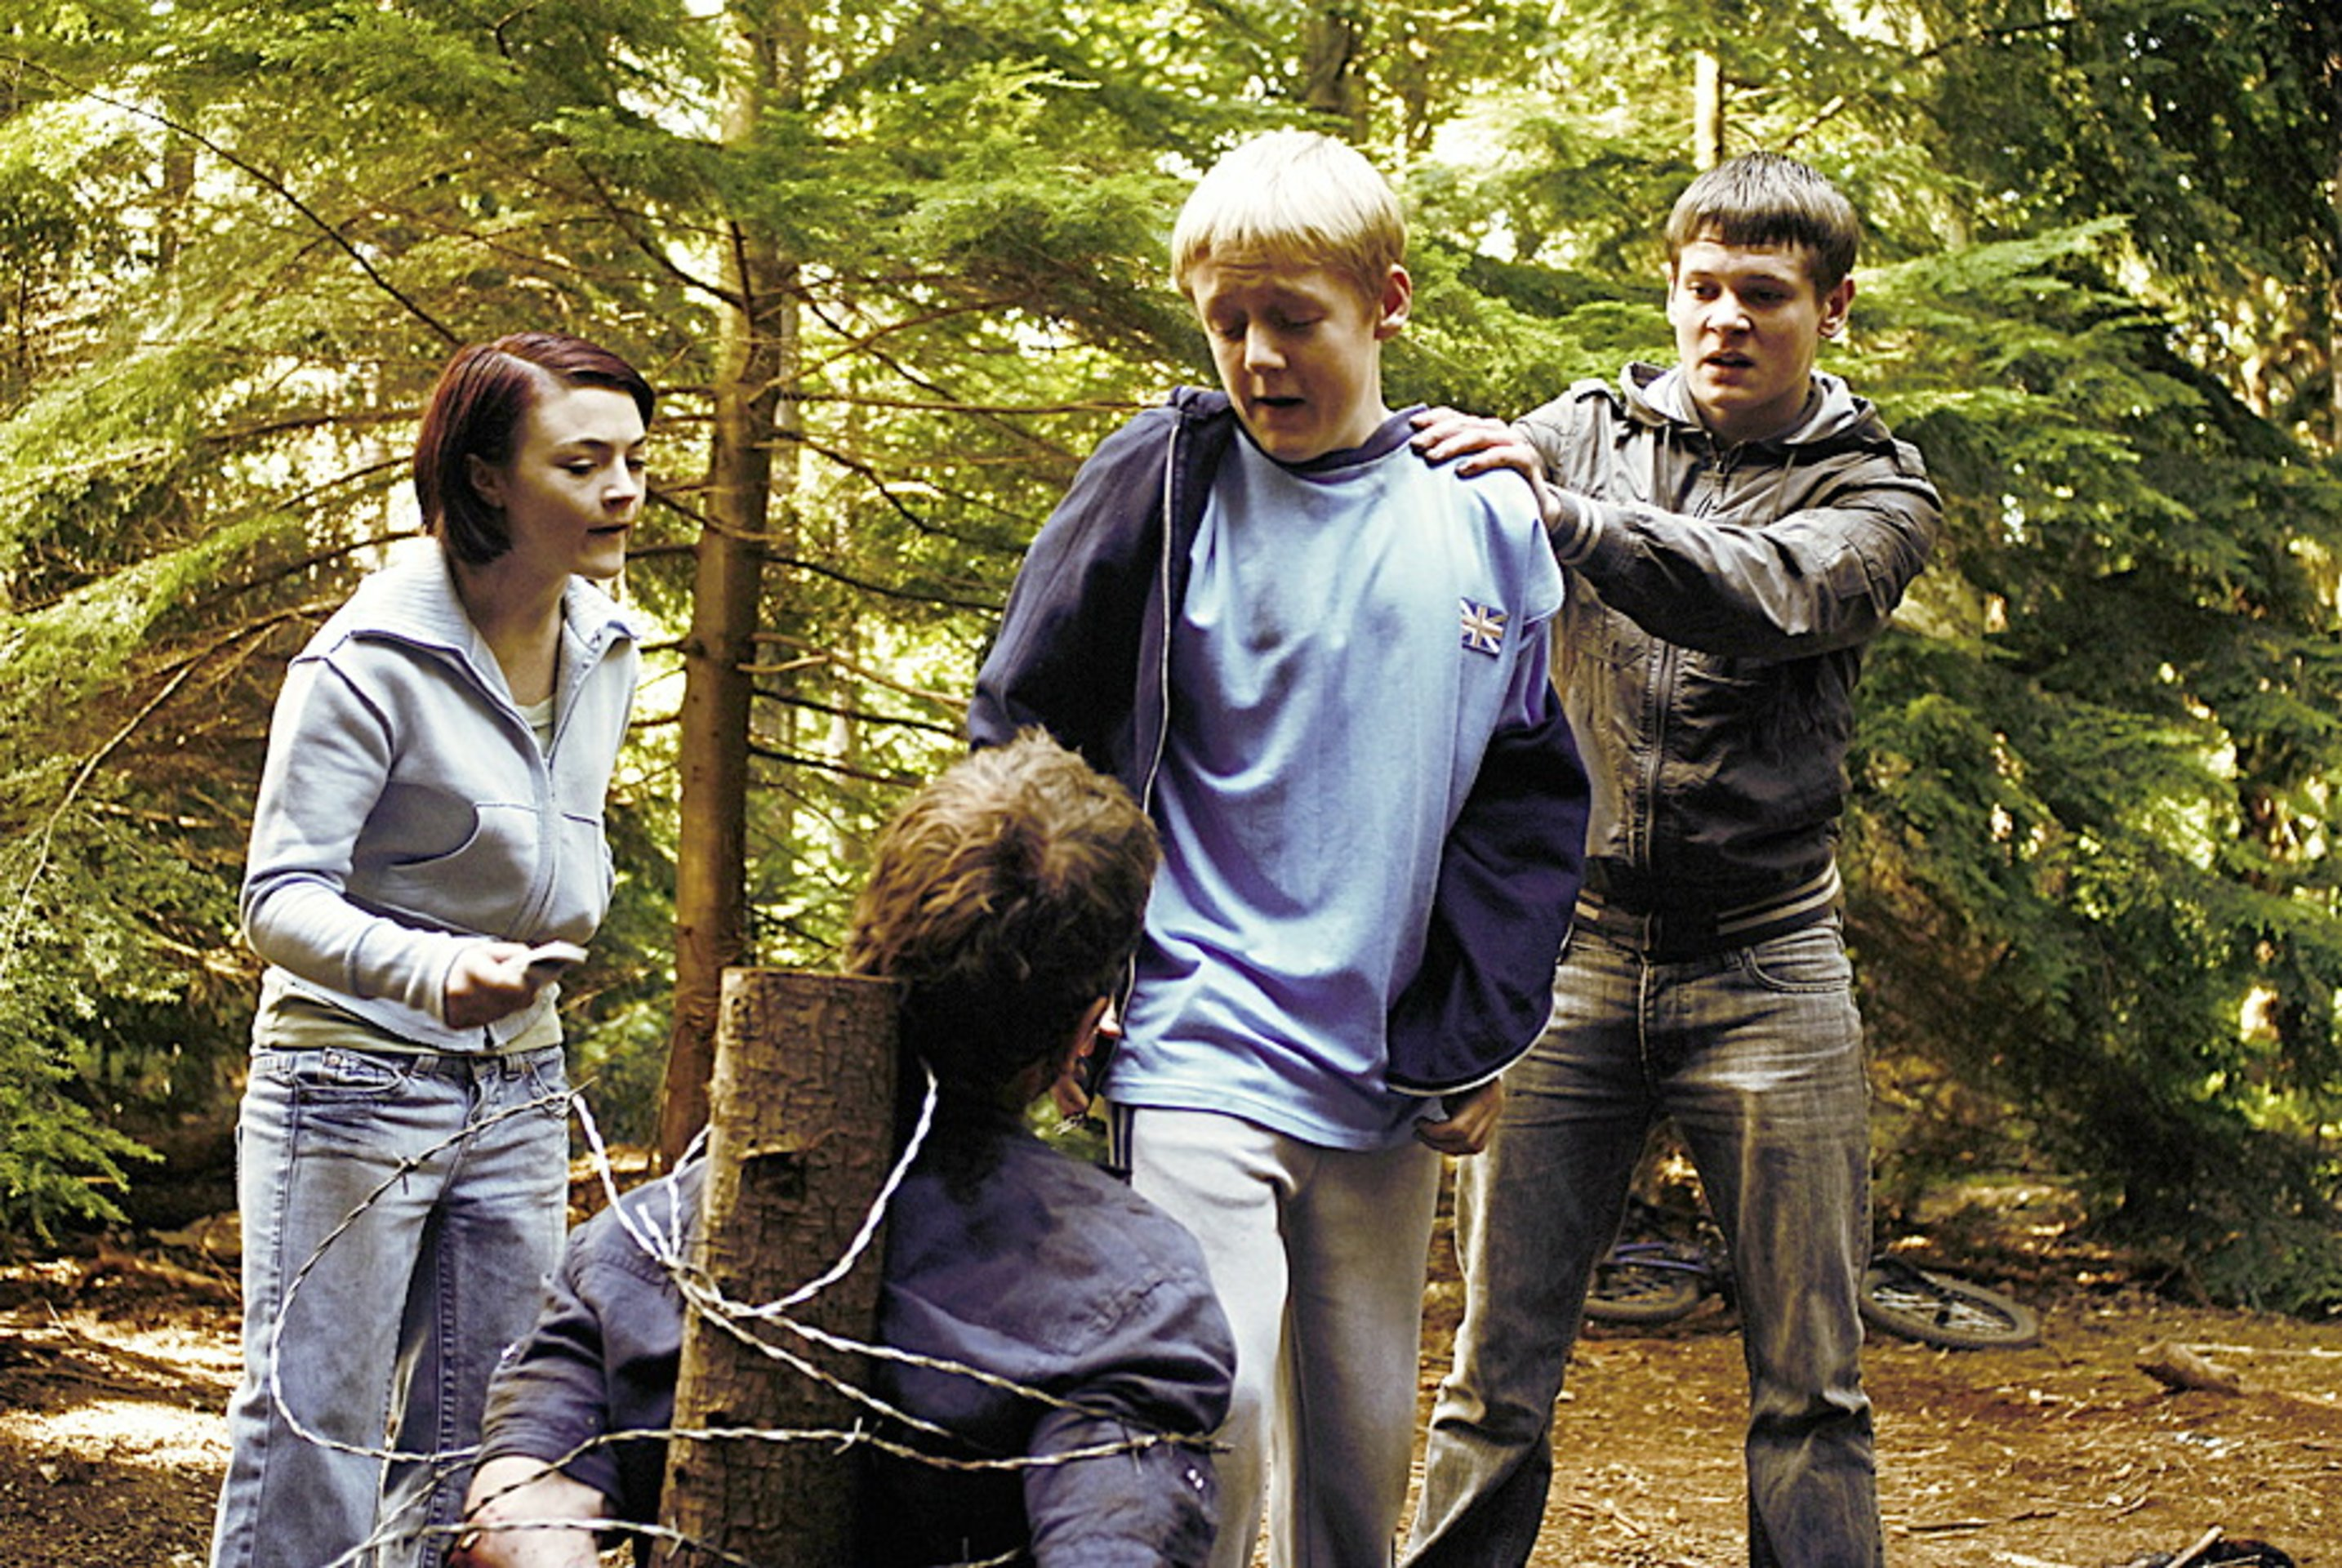 A bound Michael Fassbender is tortured by children - (l to r) Finn Atkins, Thomas Turgoose and Jack O'Connell) in Eden Lake (2008)